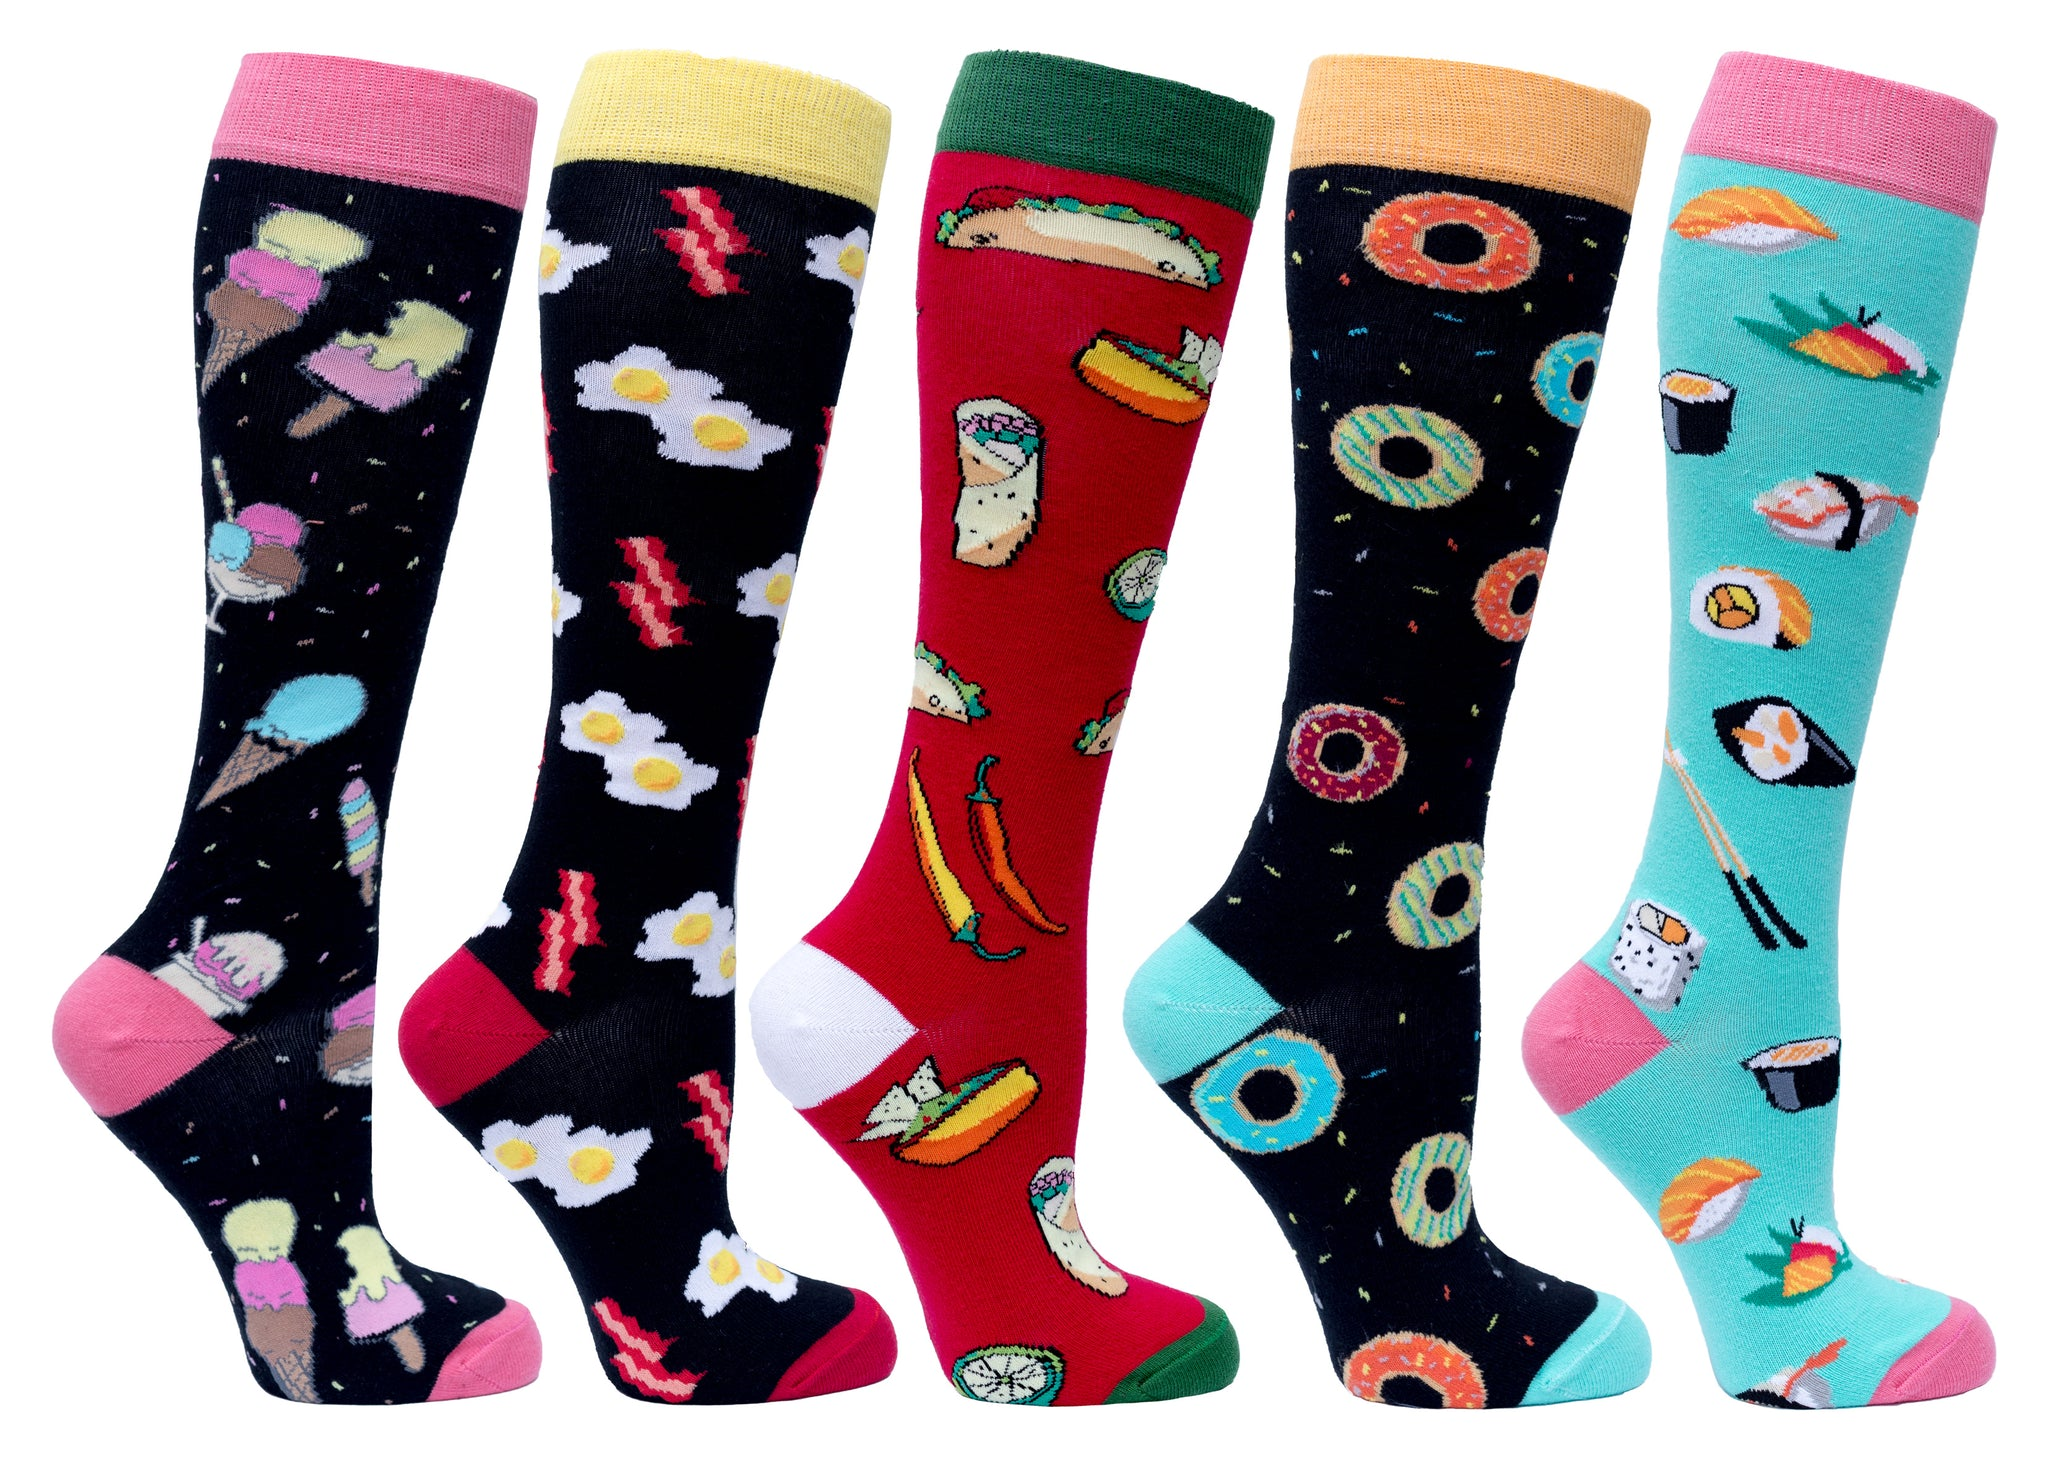 Women's Fast Food Knee High Socks Set colourful